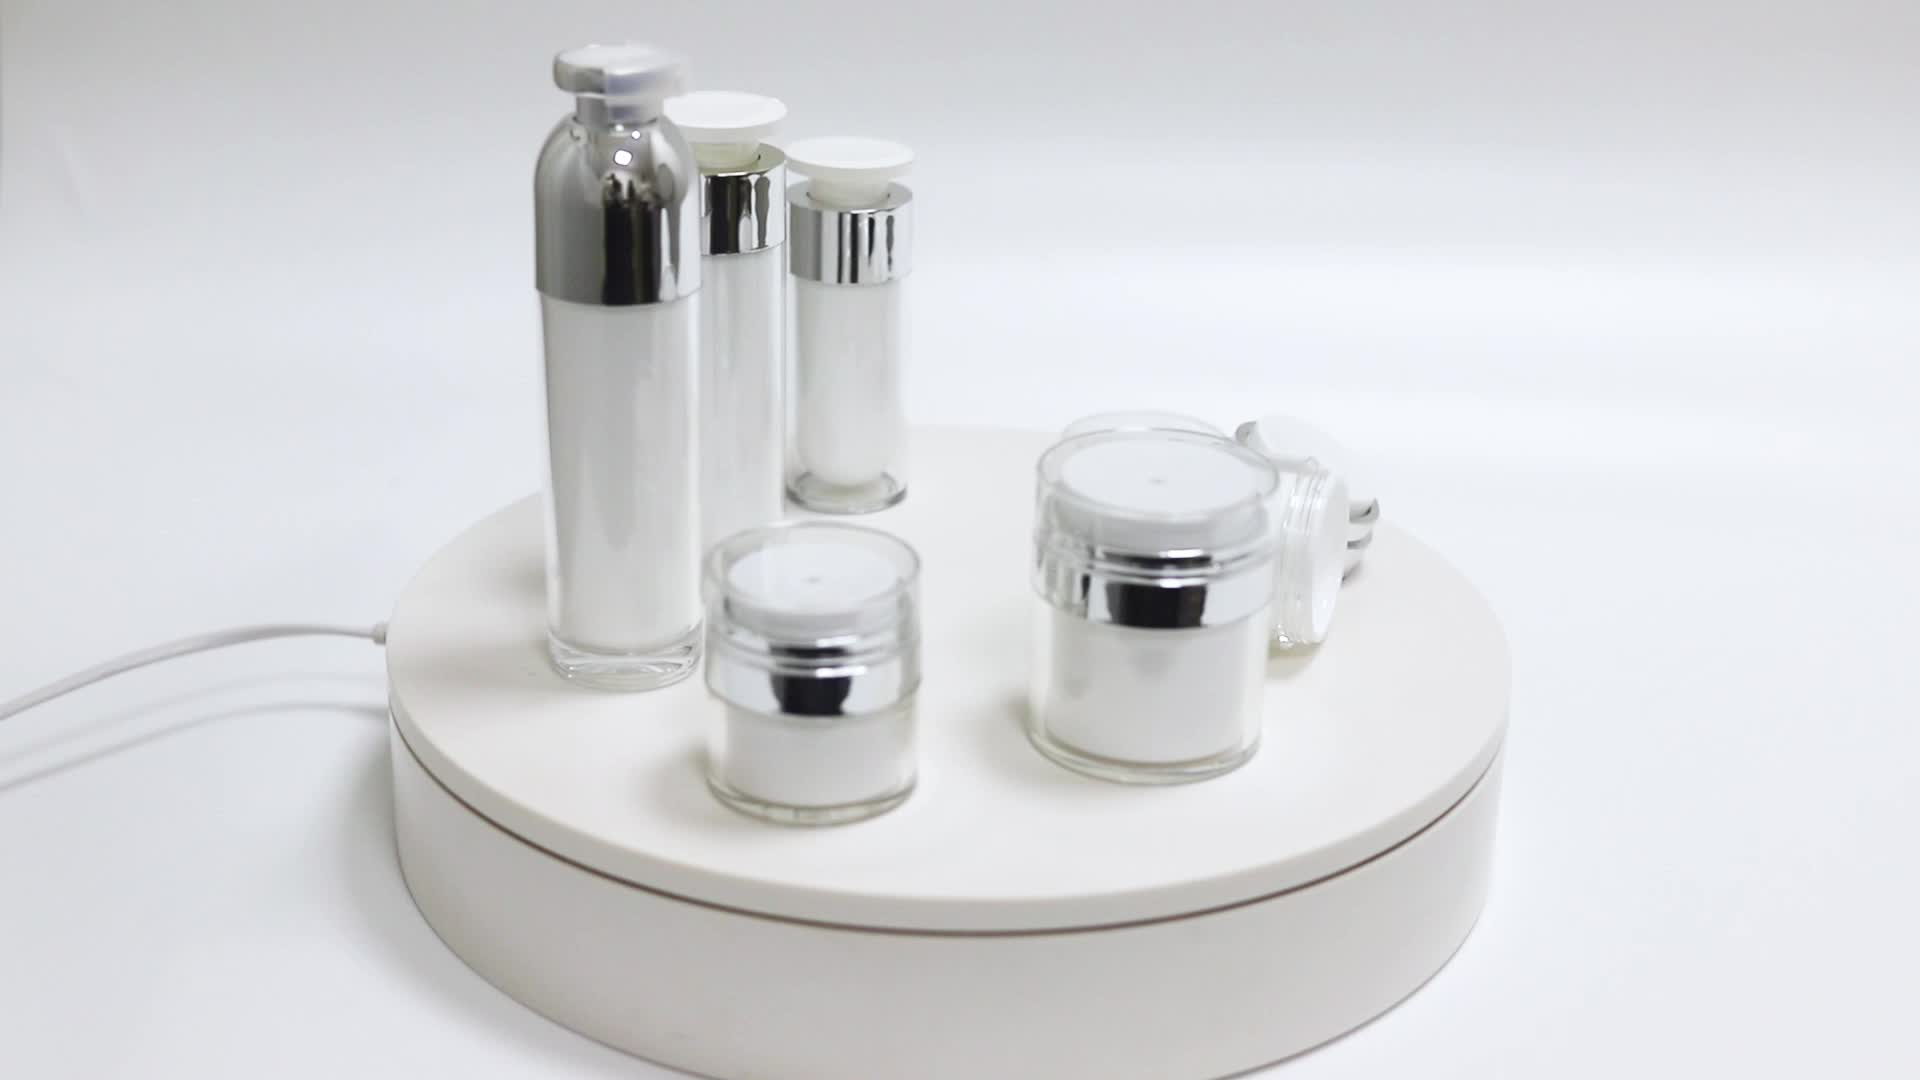 Hot sale Cylinder Plastic Acrylic Airless Lotion Bottles with Pump Face Cream Jars